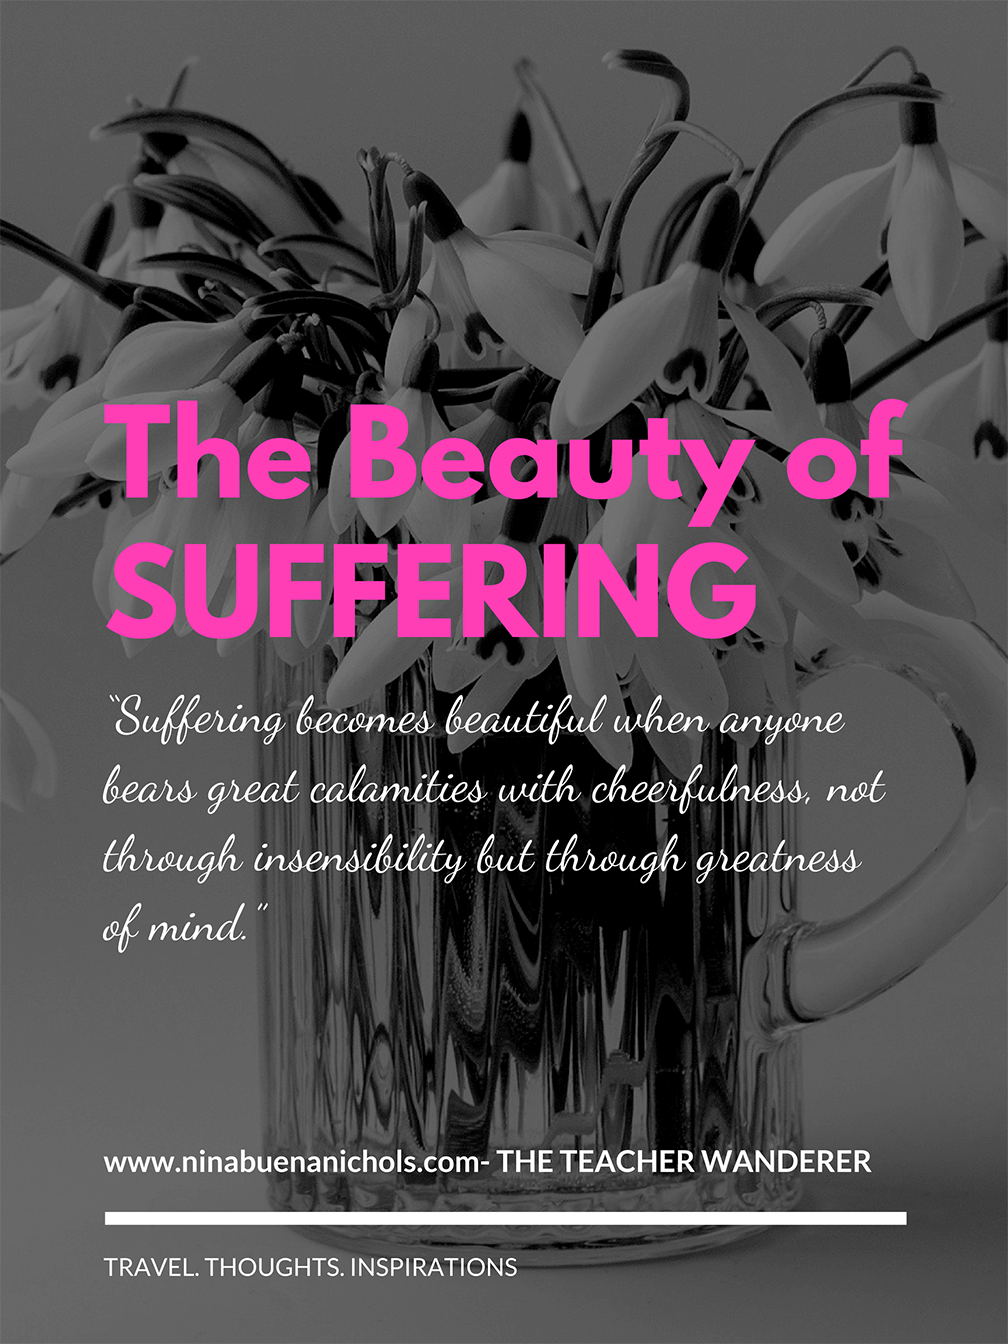 Suffering is an emotional state accompanied by negative emotions and severe pain. It usually threatens one's sanity and without justice causes irreparable injury.